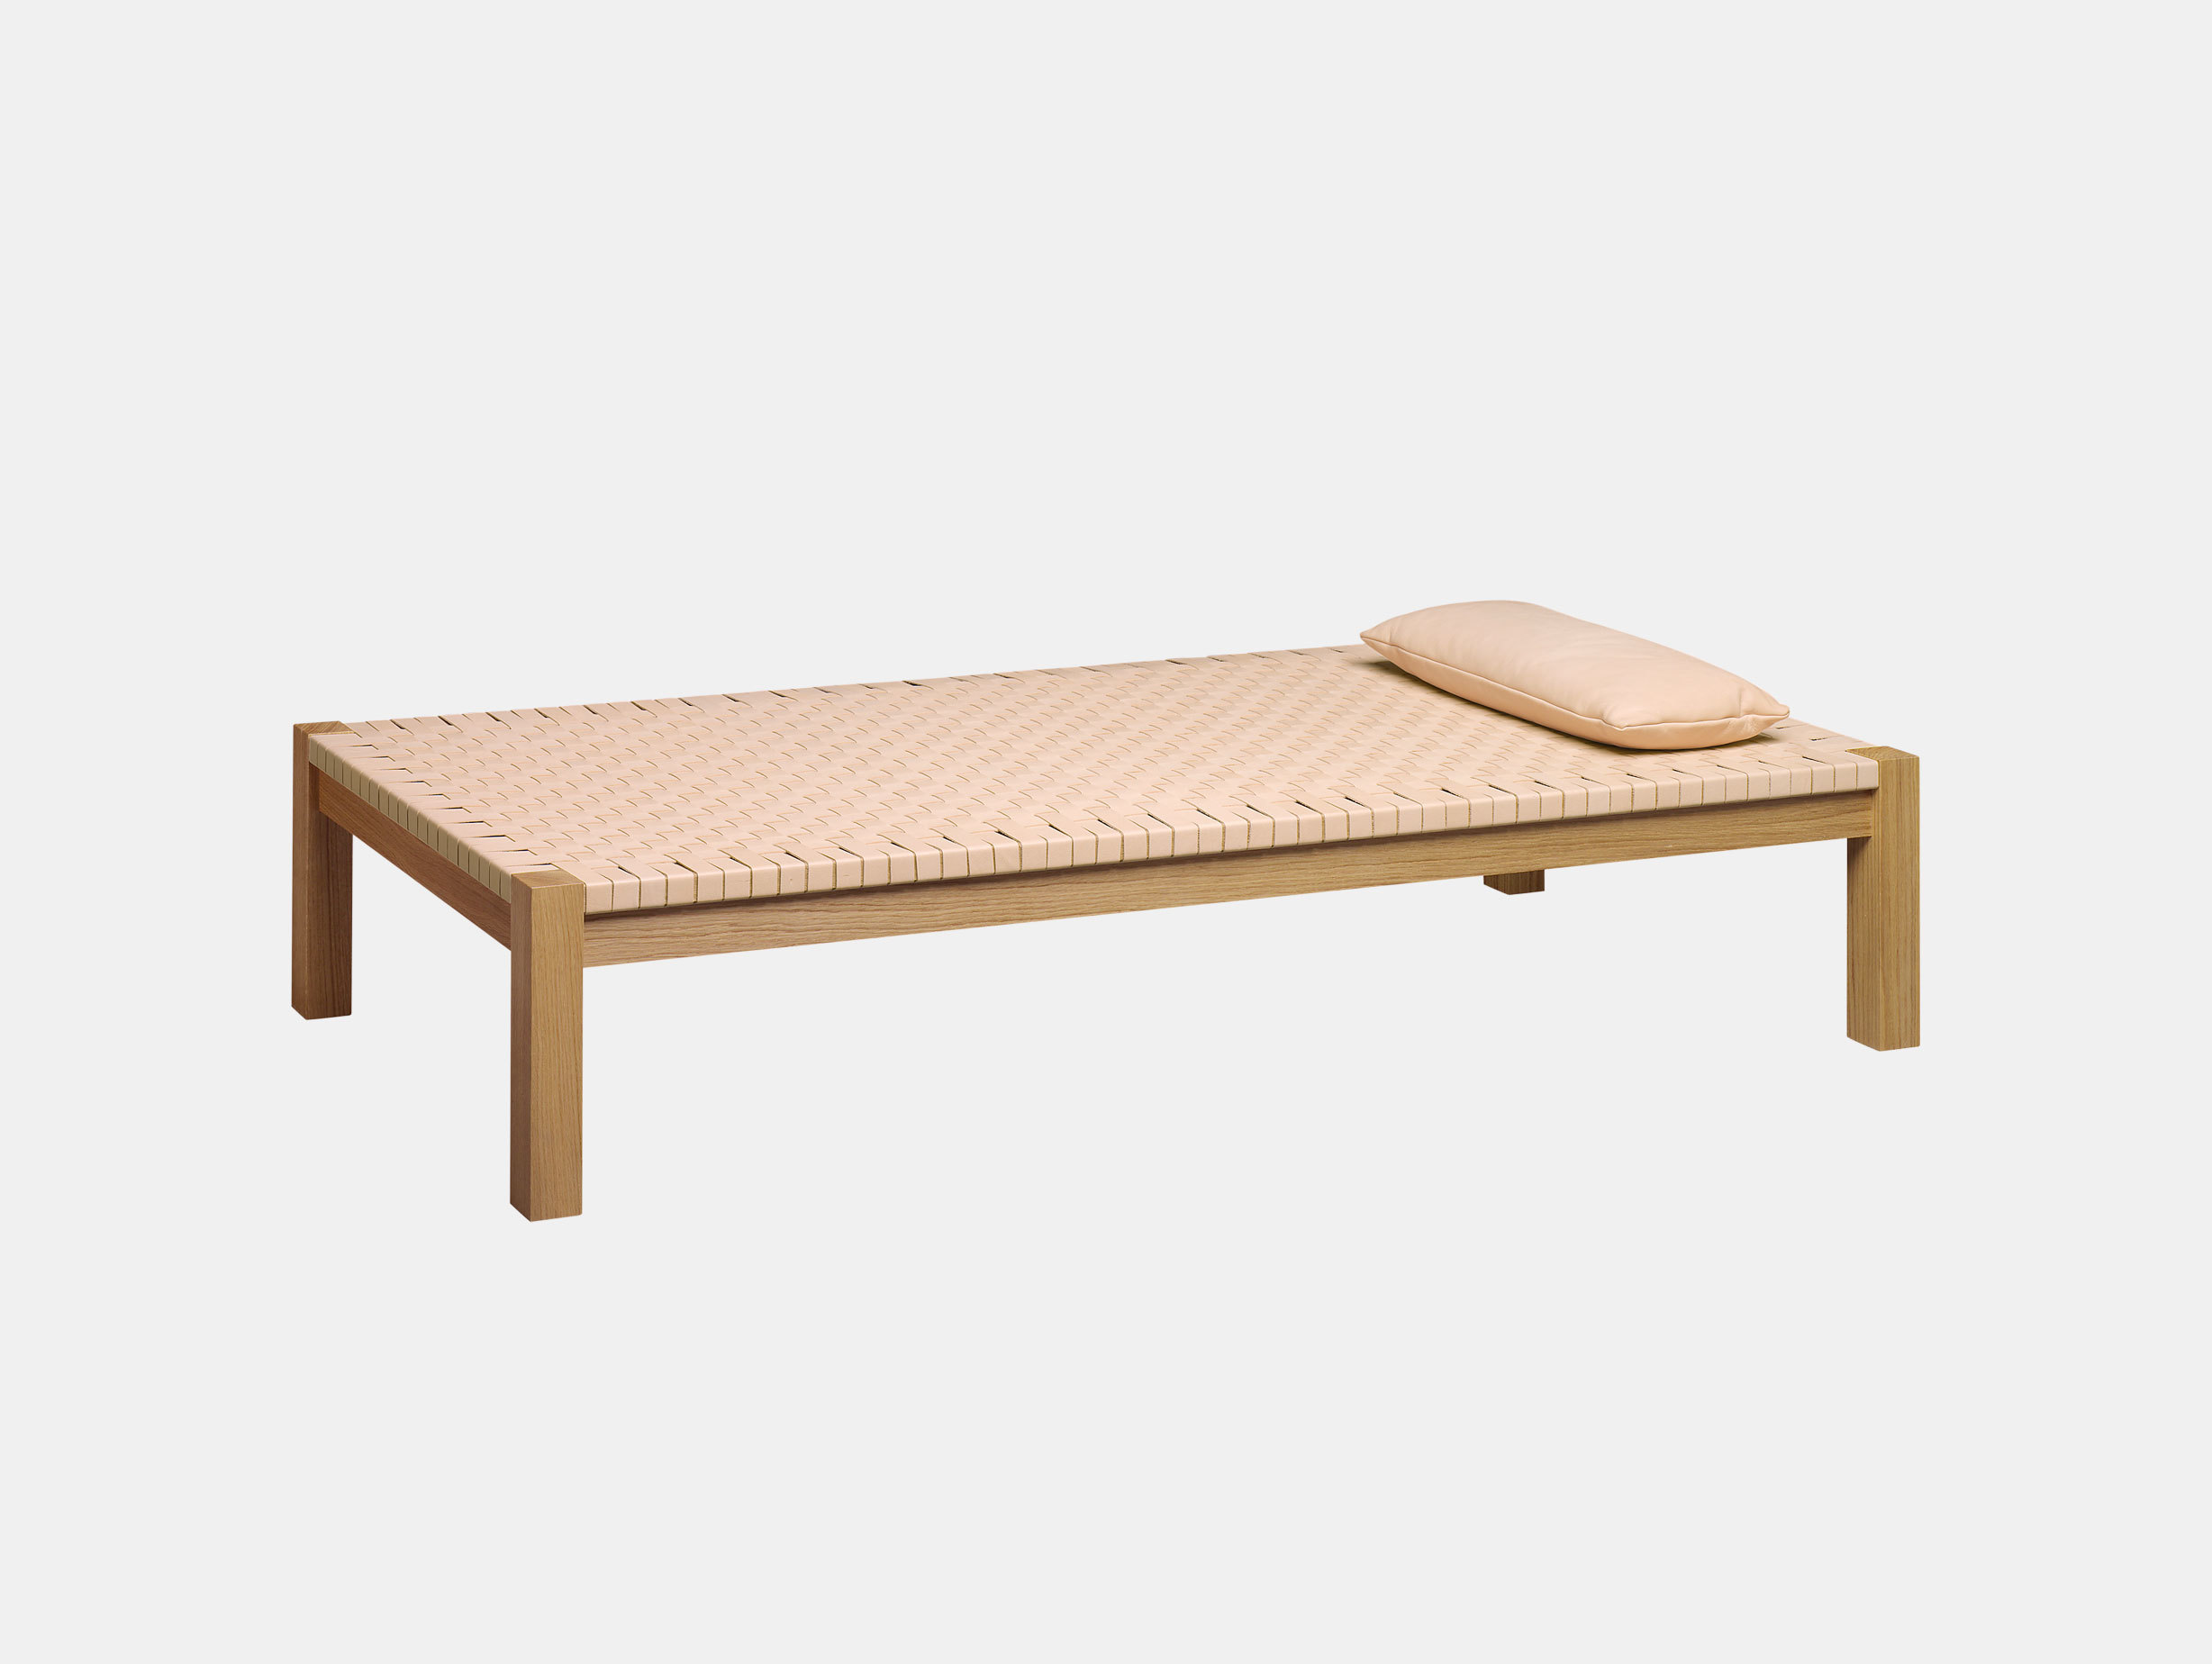 Theban Daybed image 1